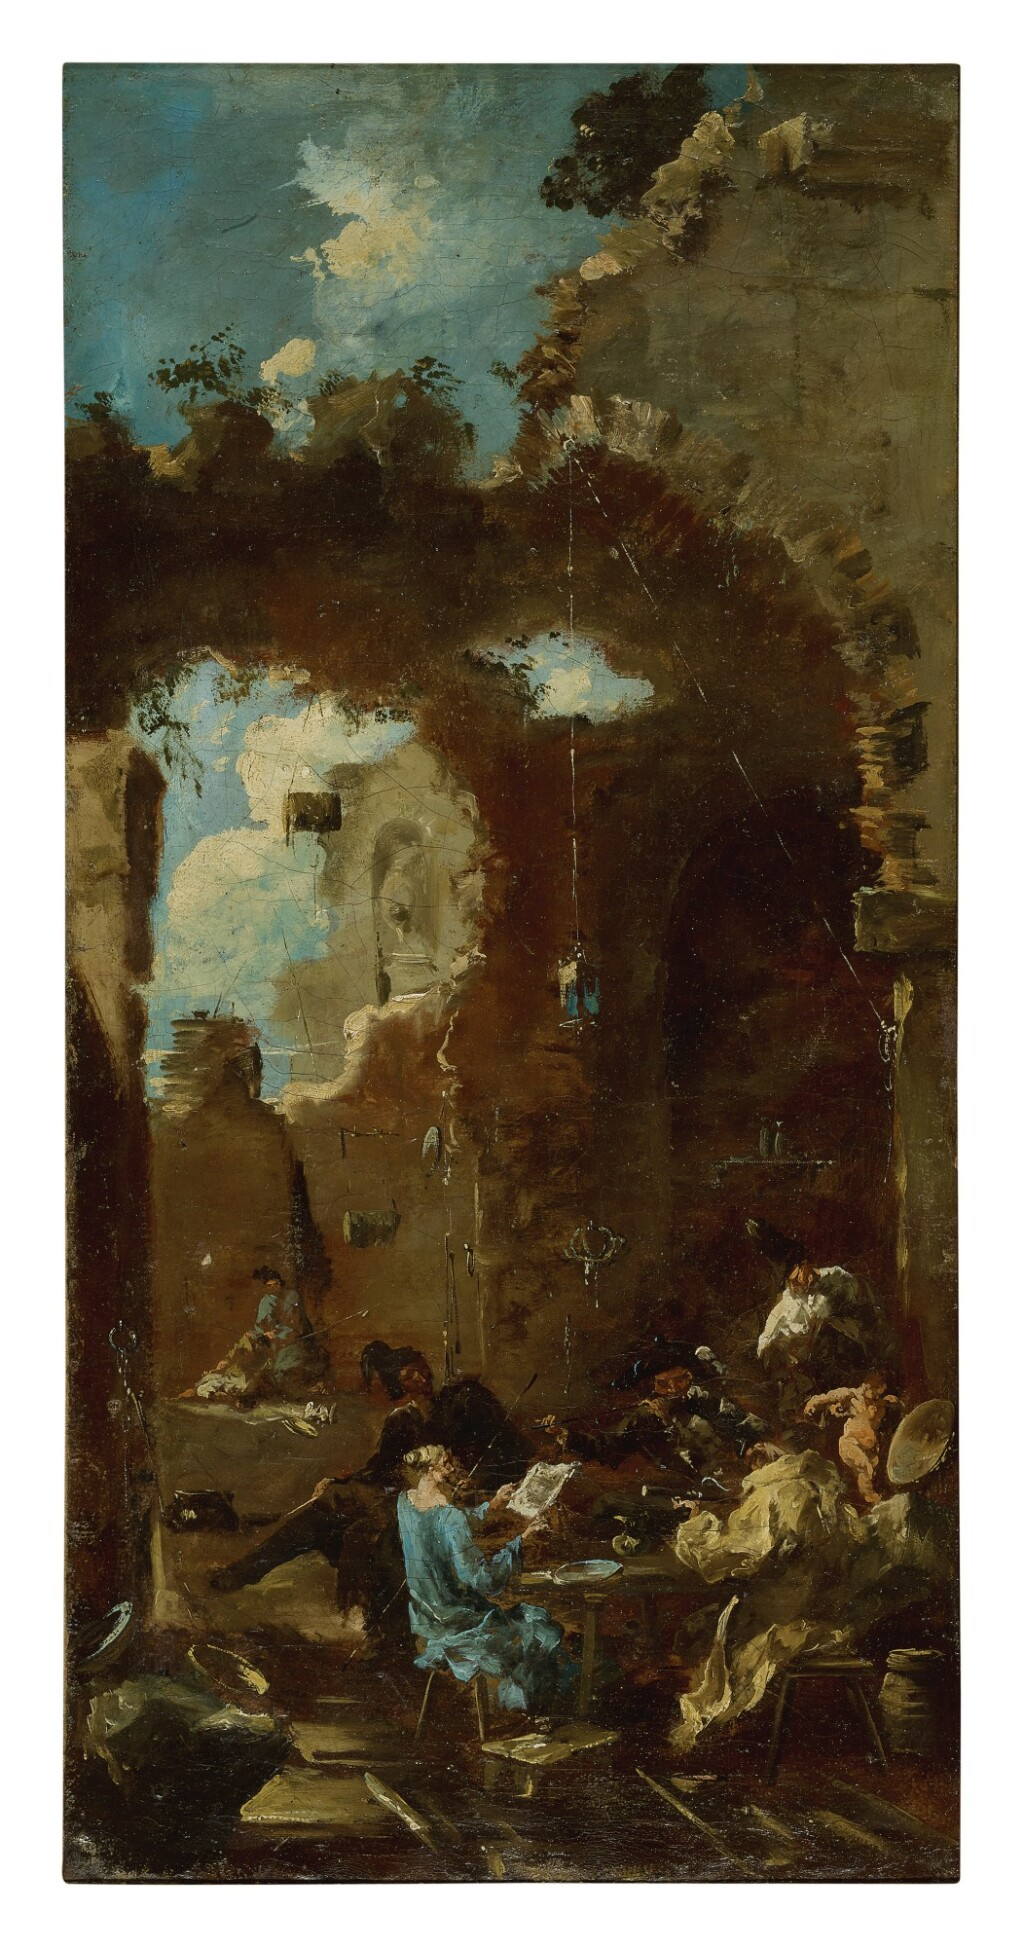 MANNER OF ALESSANDRO MAGNASCO, CALLED IL LISSANDRINO   A CONCERT IN A TAVERN AMONG RUINS